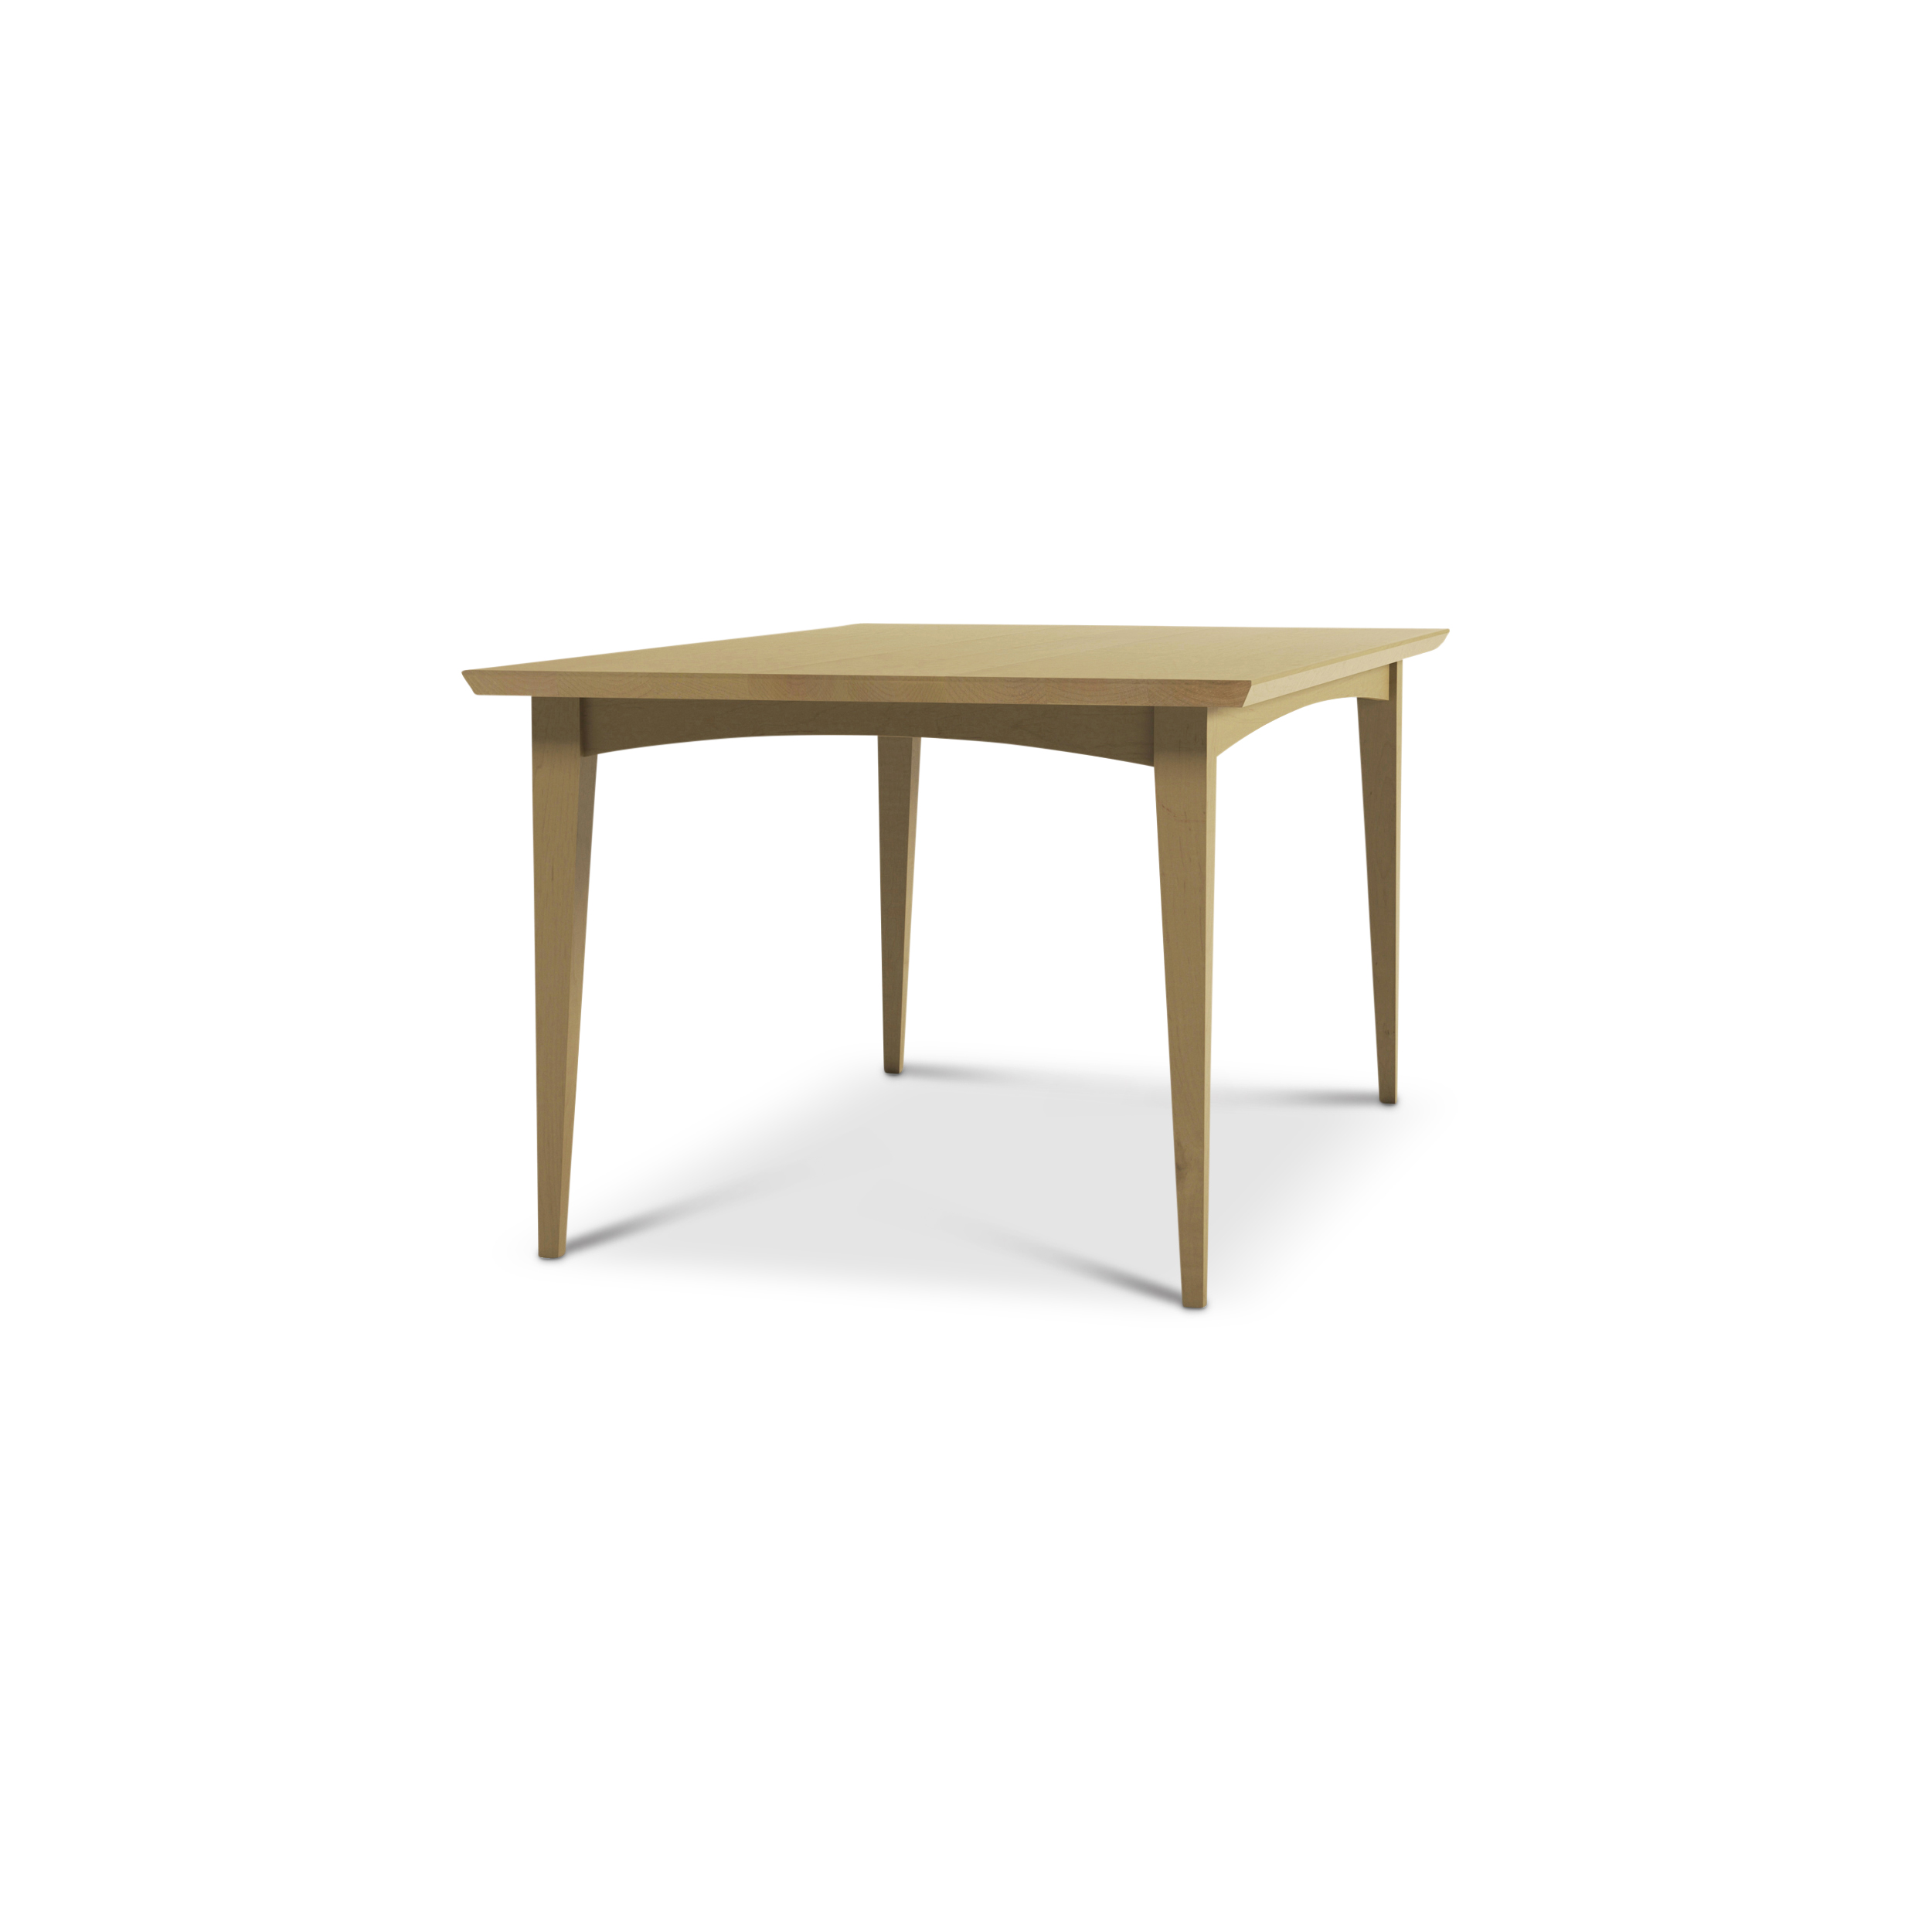 Maple Dining Room Table With Solid Wood Legs